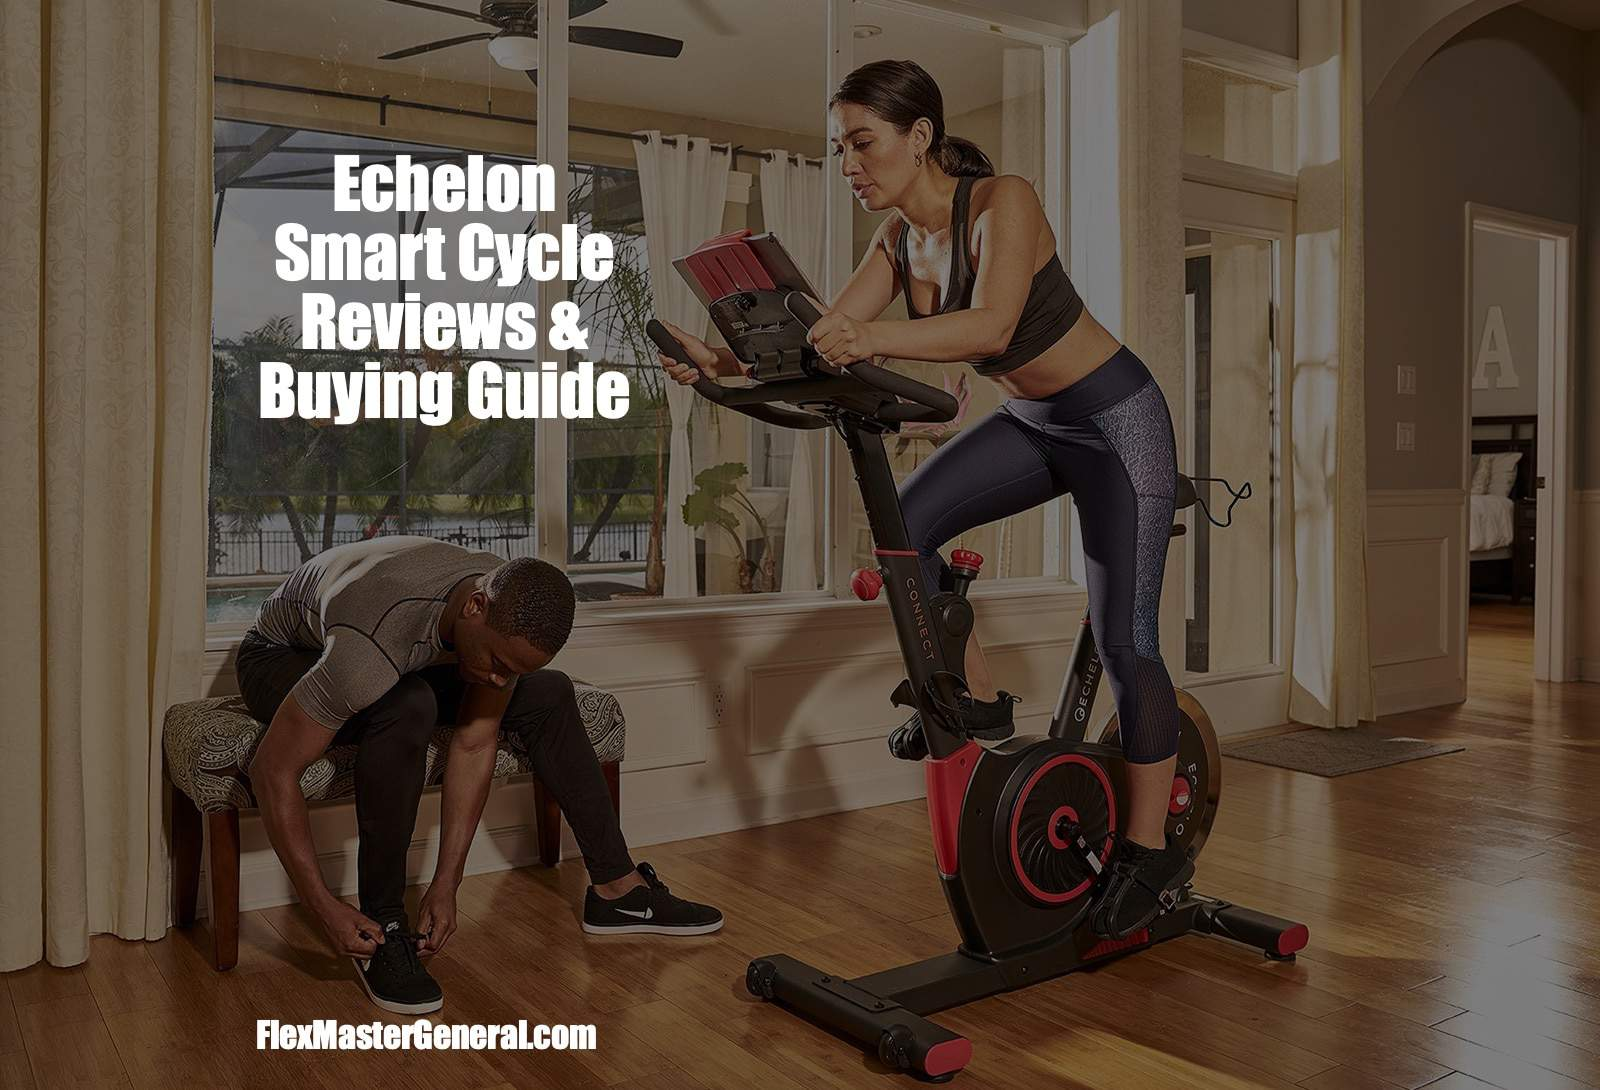 echelon review and buying guide